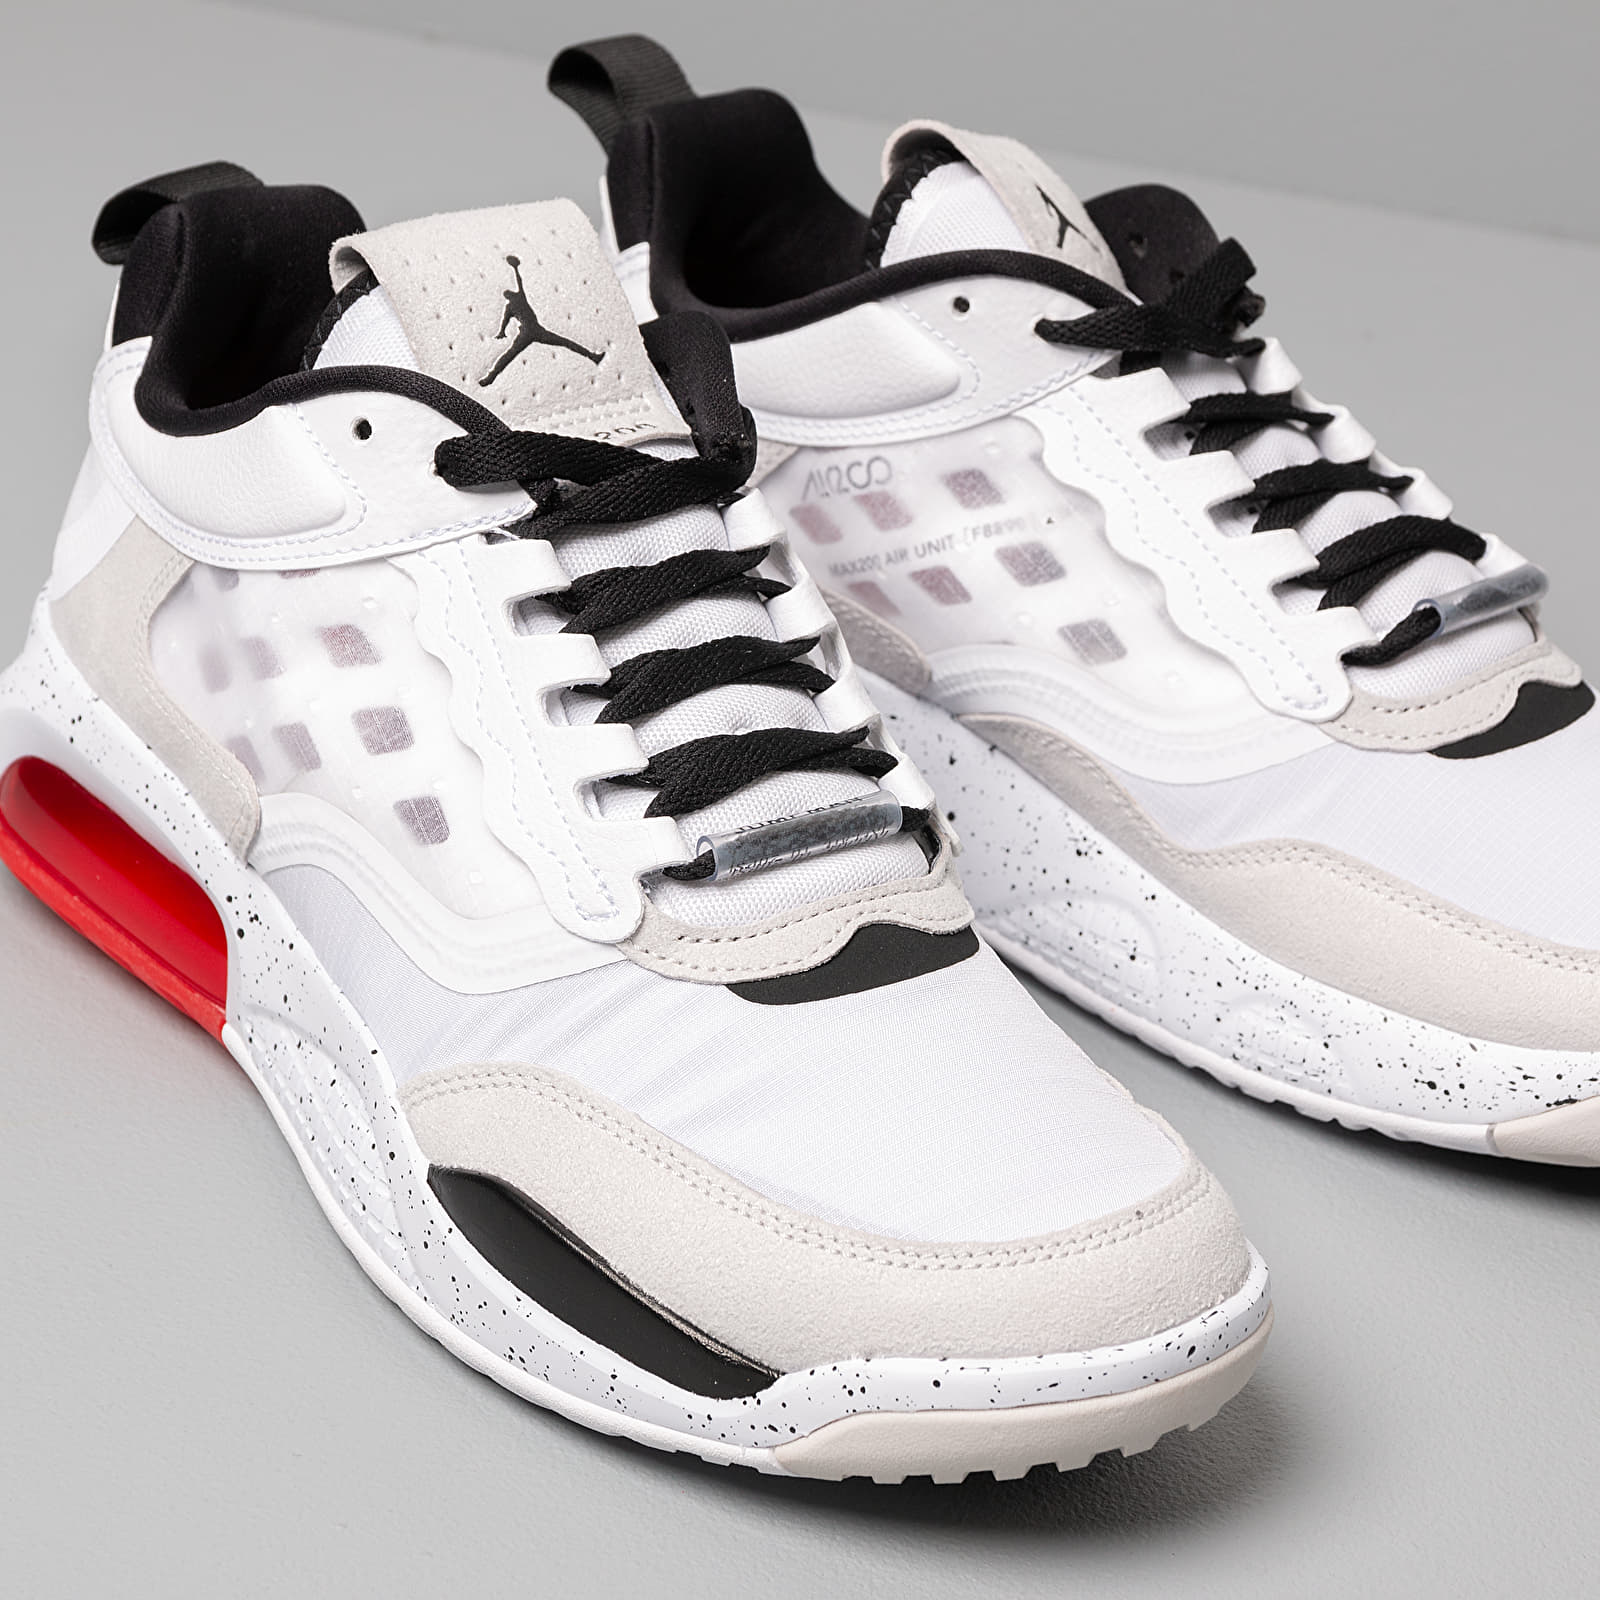 Jordan Max 200 White Black Challenge Red Vast Grey | Footshop